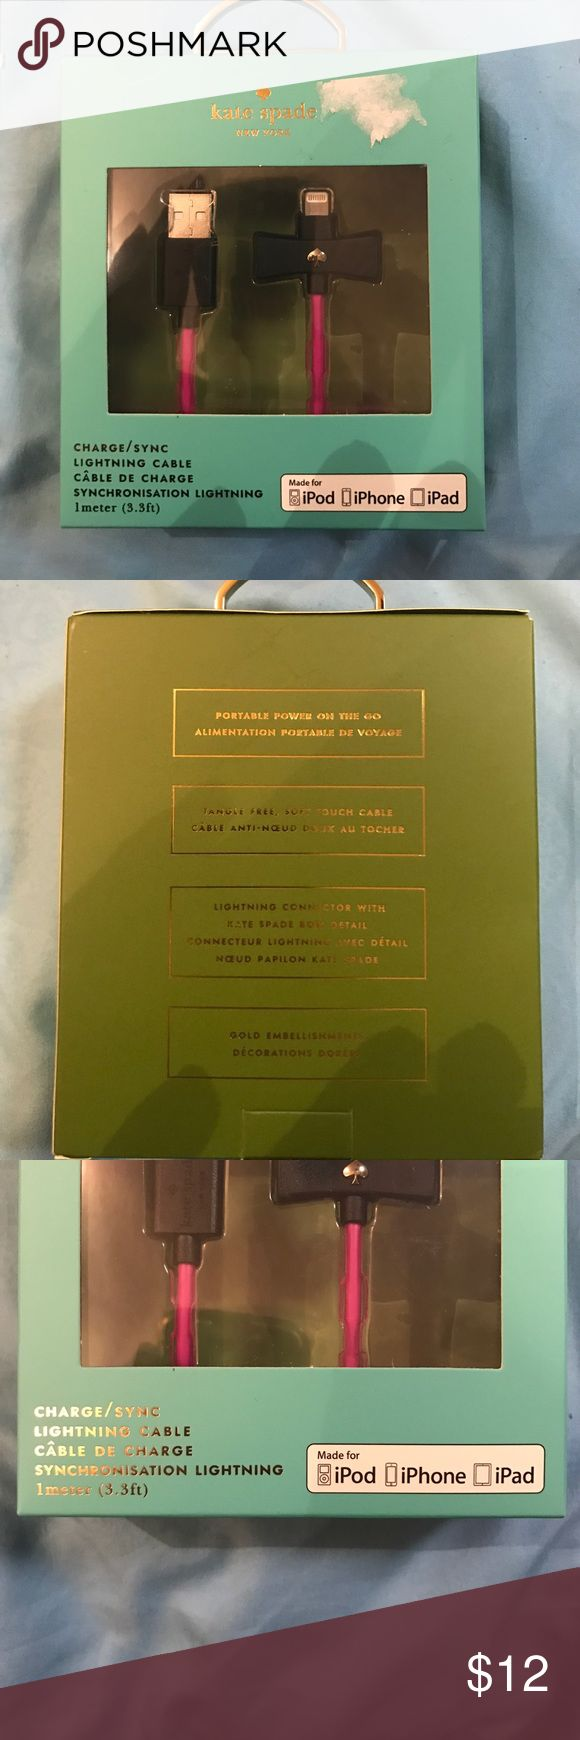 NIB kate spade iPhone Charging/Sync Lighting Cable This is a portable power on the go, tangle free soft touch cable, lighting connectors with kate spade bow detail, gold embellishments. This is a charging/syncing cord for iphone5 and up!!! kate spade Accessories